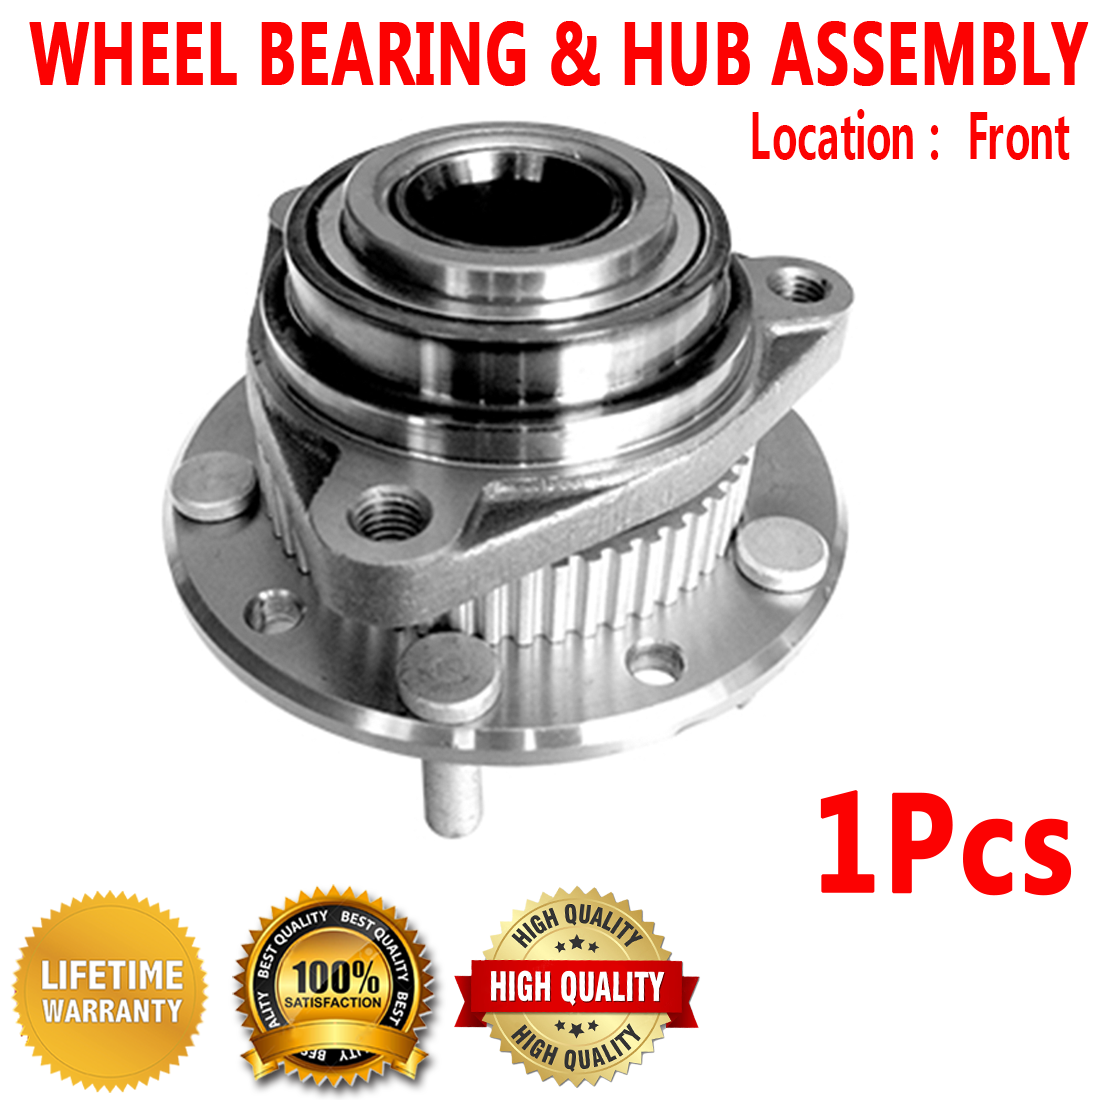 Details about FRONT Wheel Hub Bearing Assembly for CHEVROLET S10 BLAZER 4WD